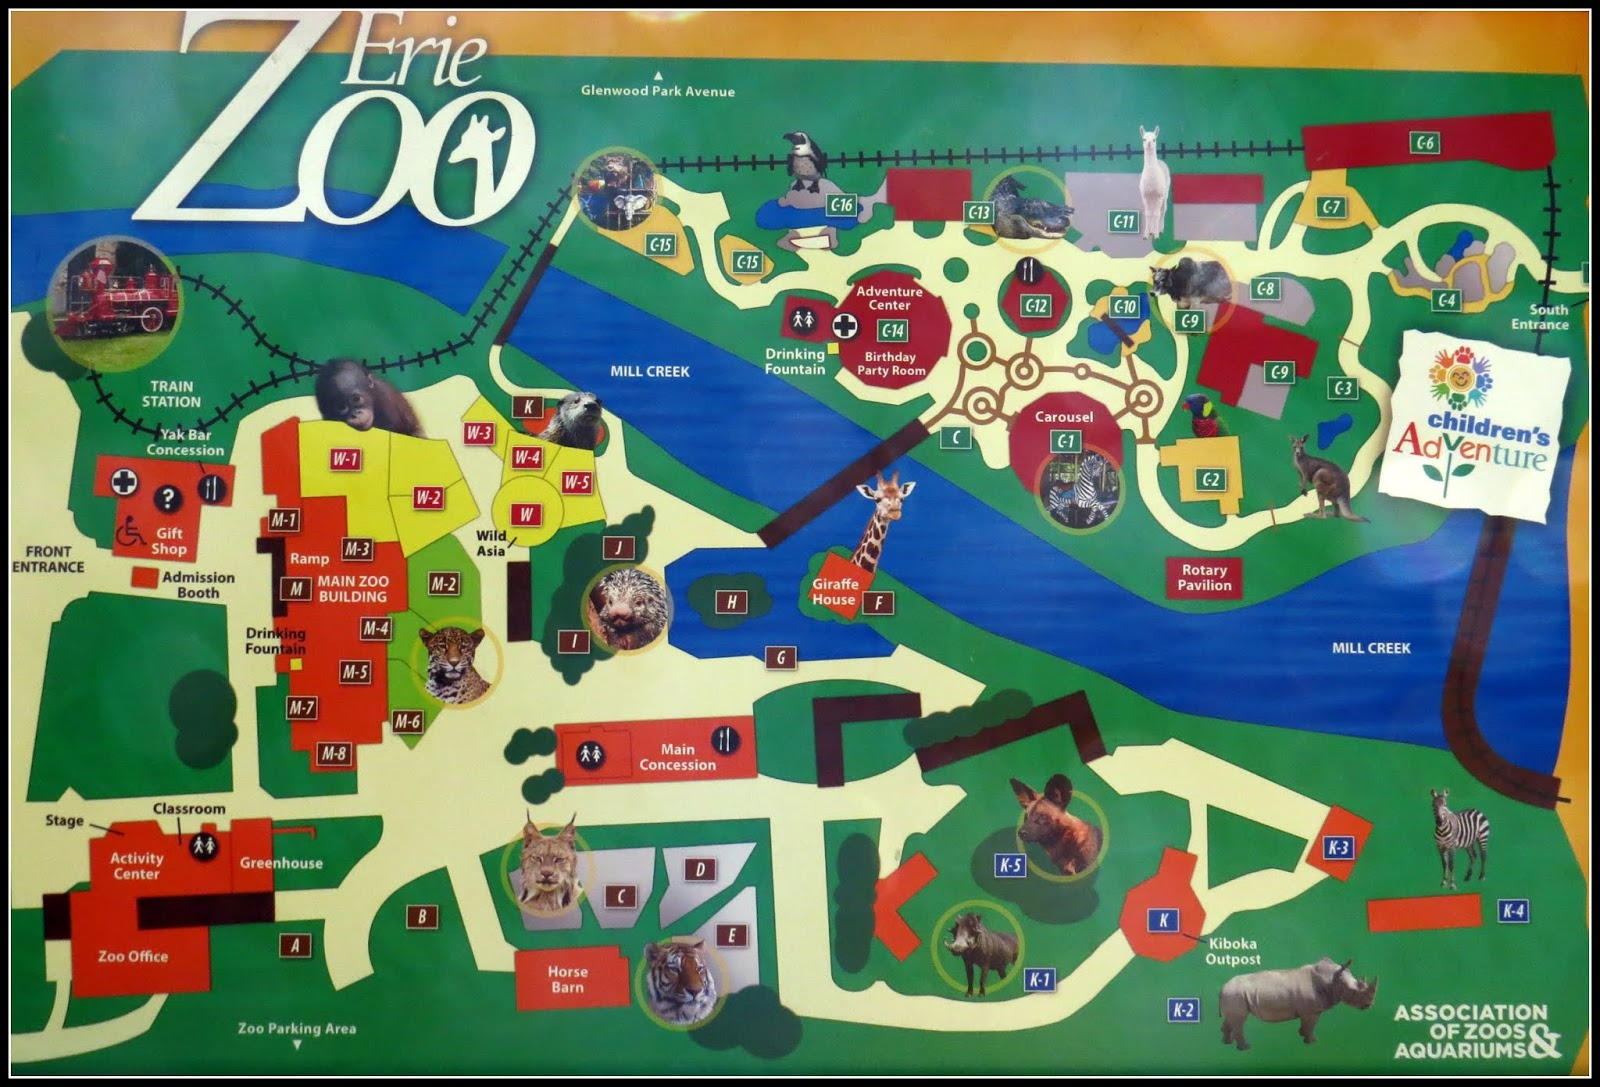 since we needed a bit of fun we headed to the erie zoo which is located on 15 acres within the city it was a fairly warm day when we visited and many